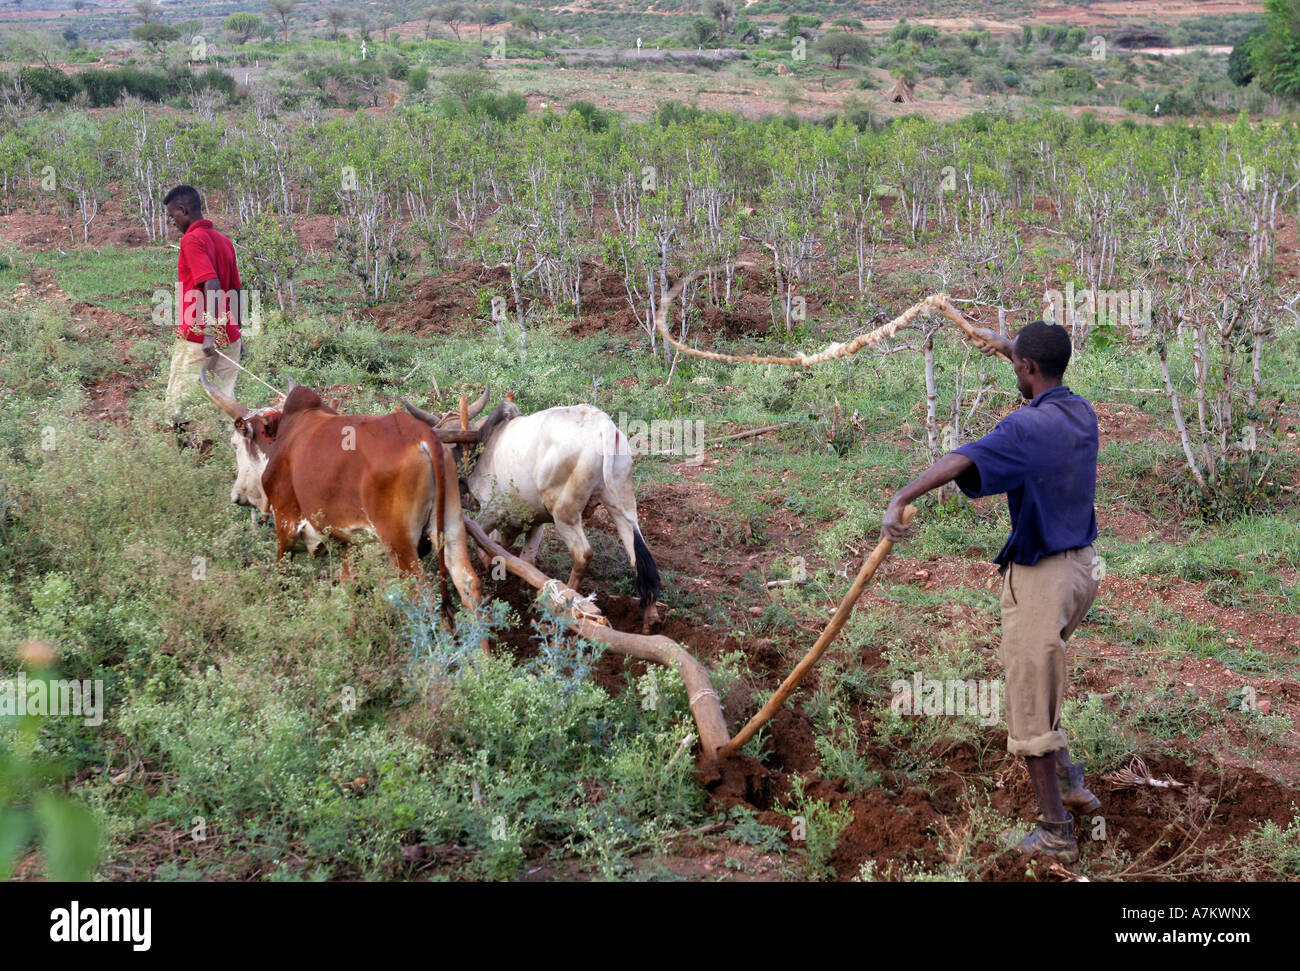 Ethiopia - a man leads the cattles in plowing his families farmland - Stock Image